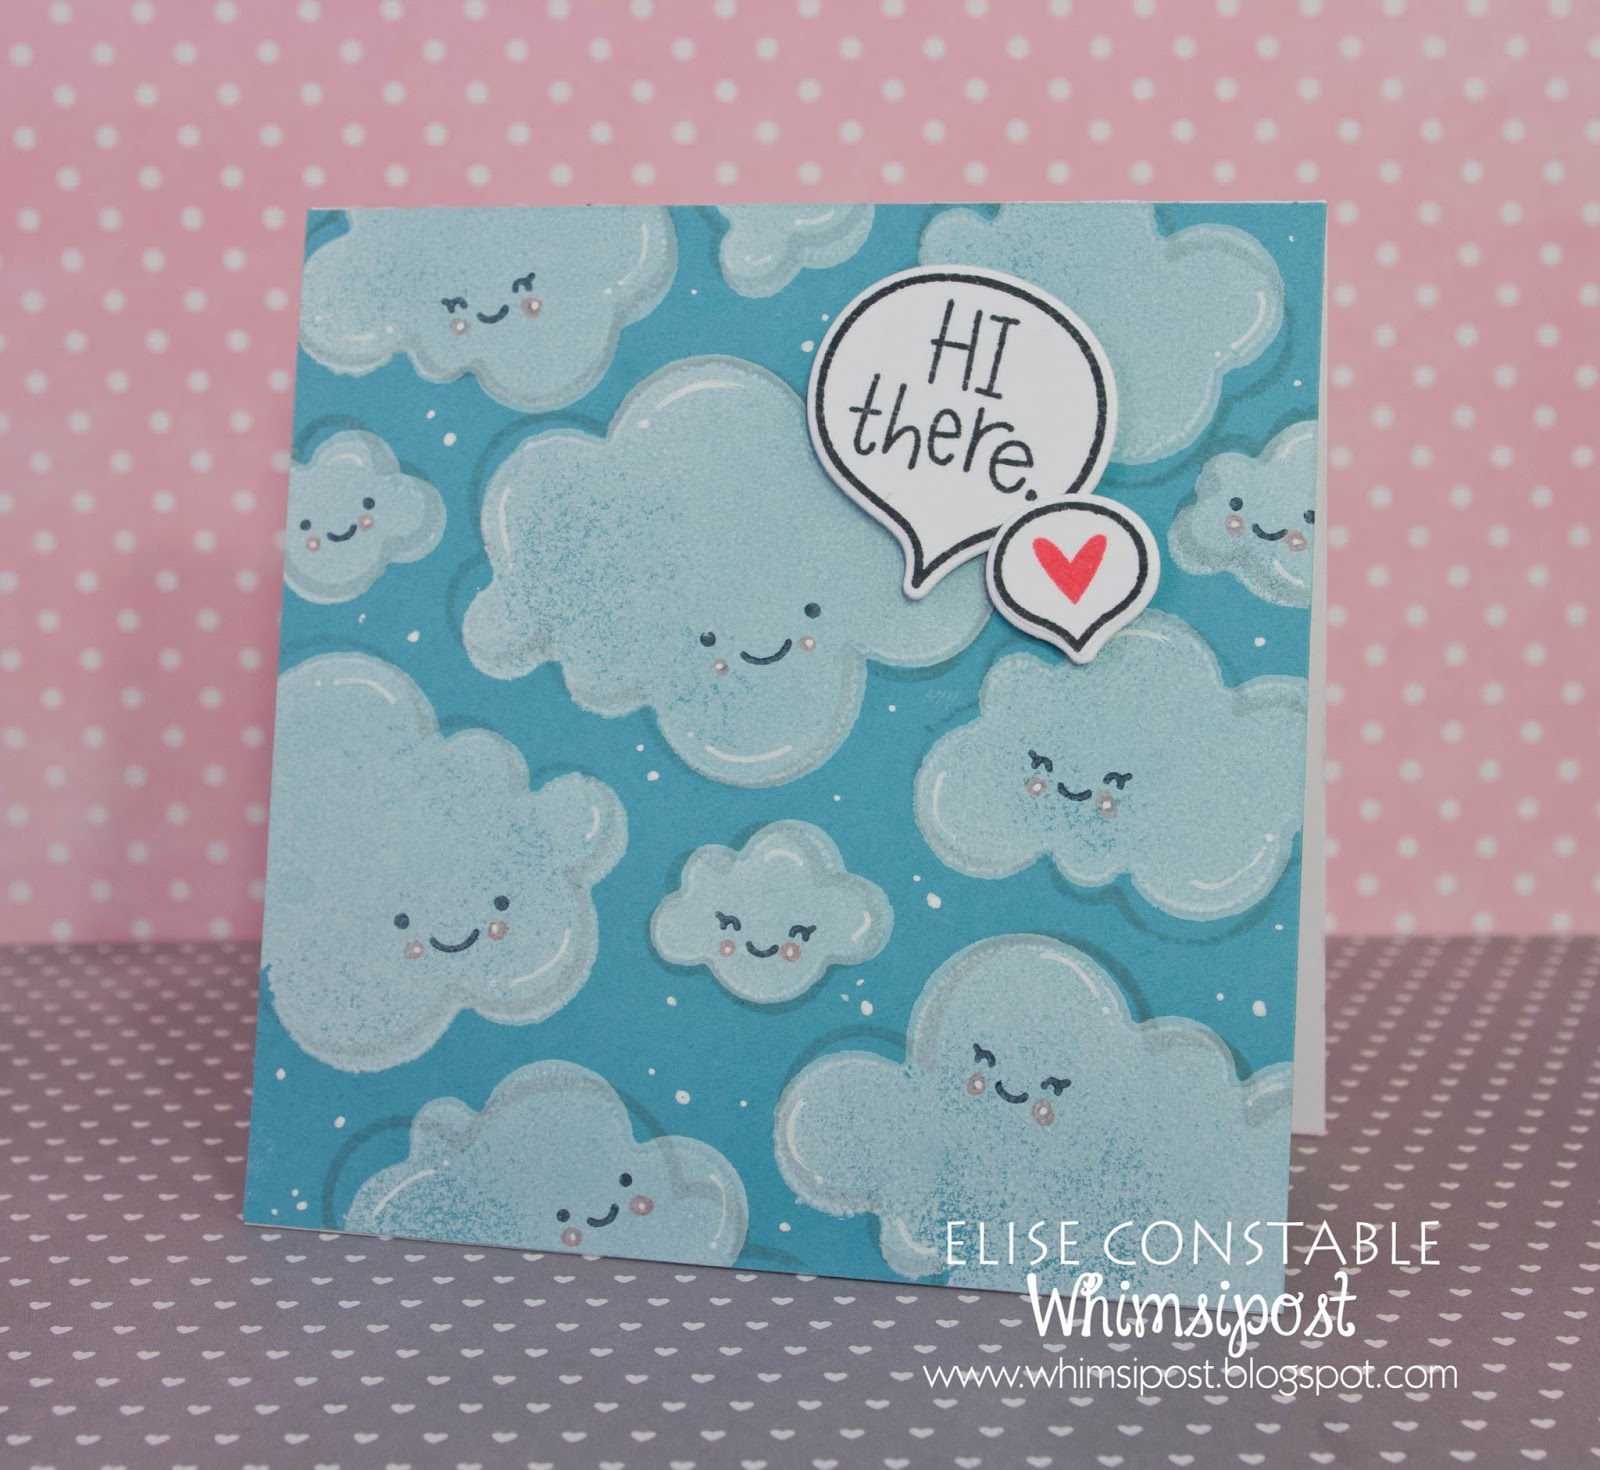 Whimsipost Smiley Clouds